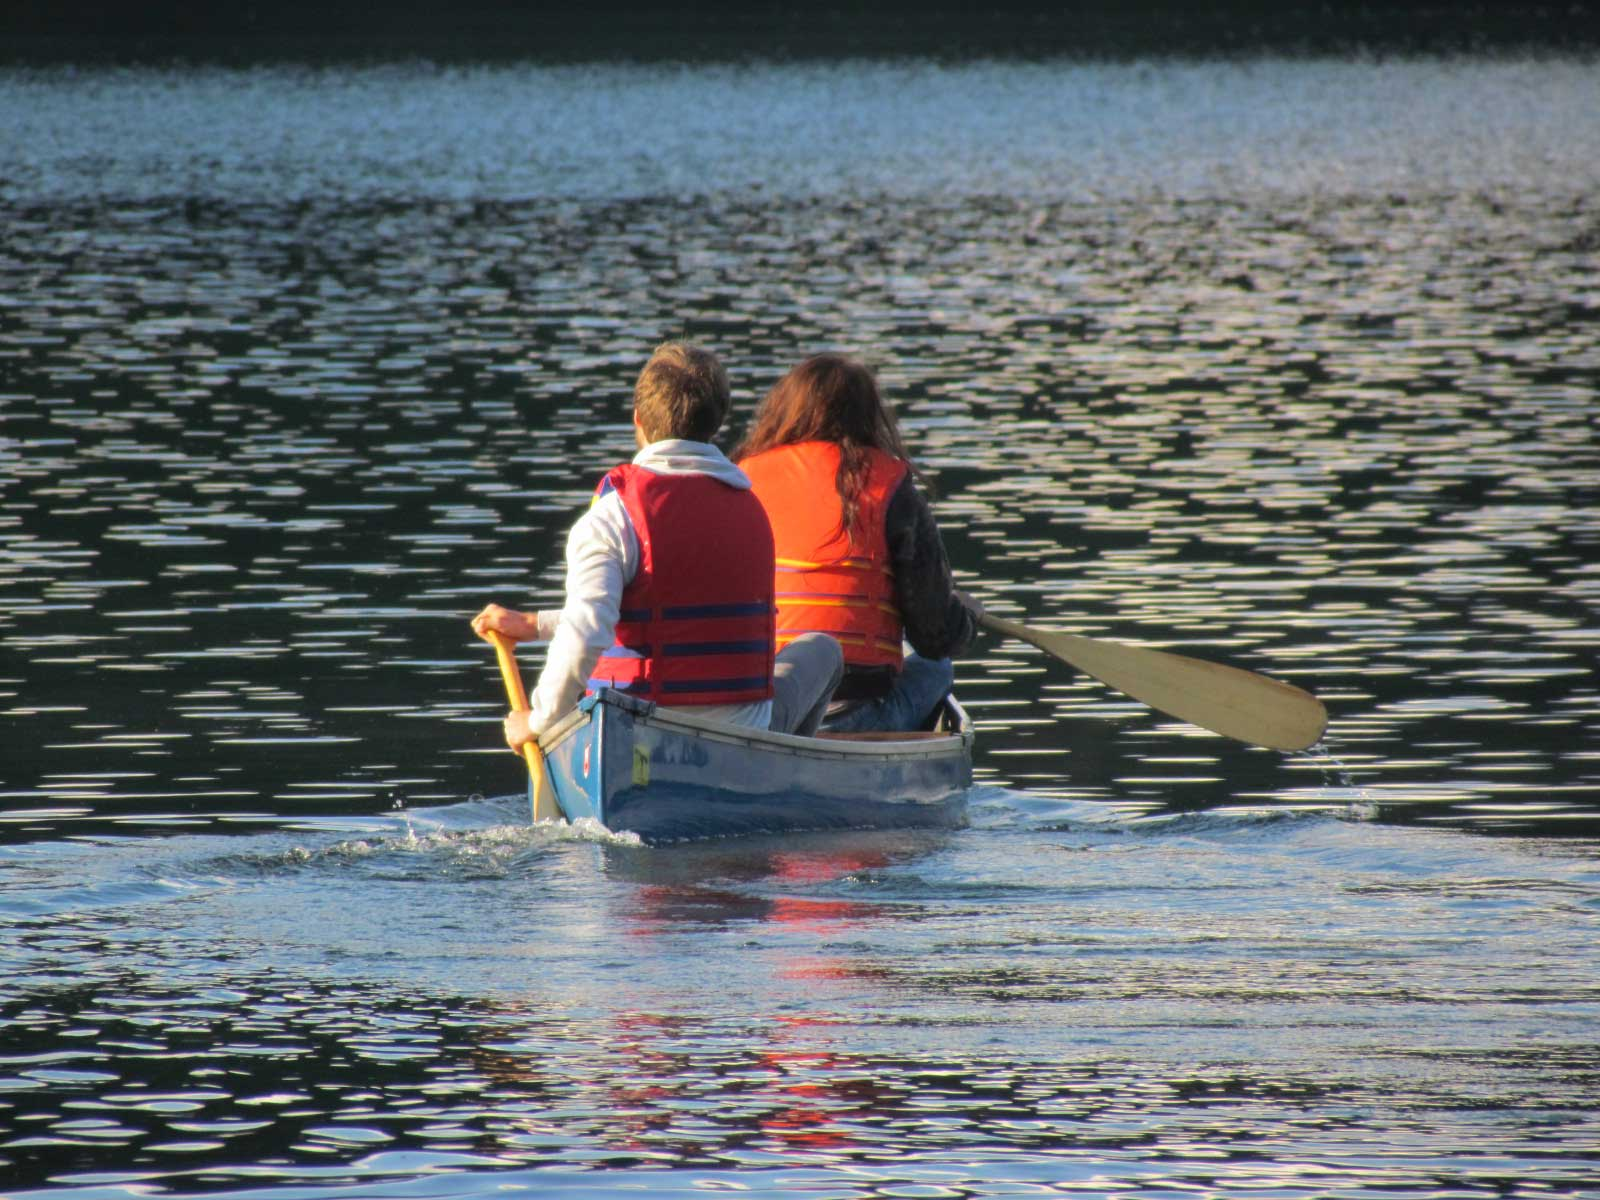 2 people canoeing on a lake - by Alex Galler